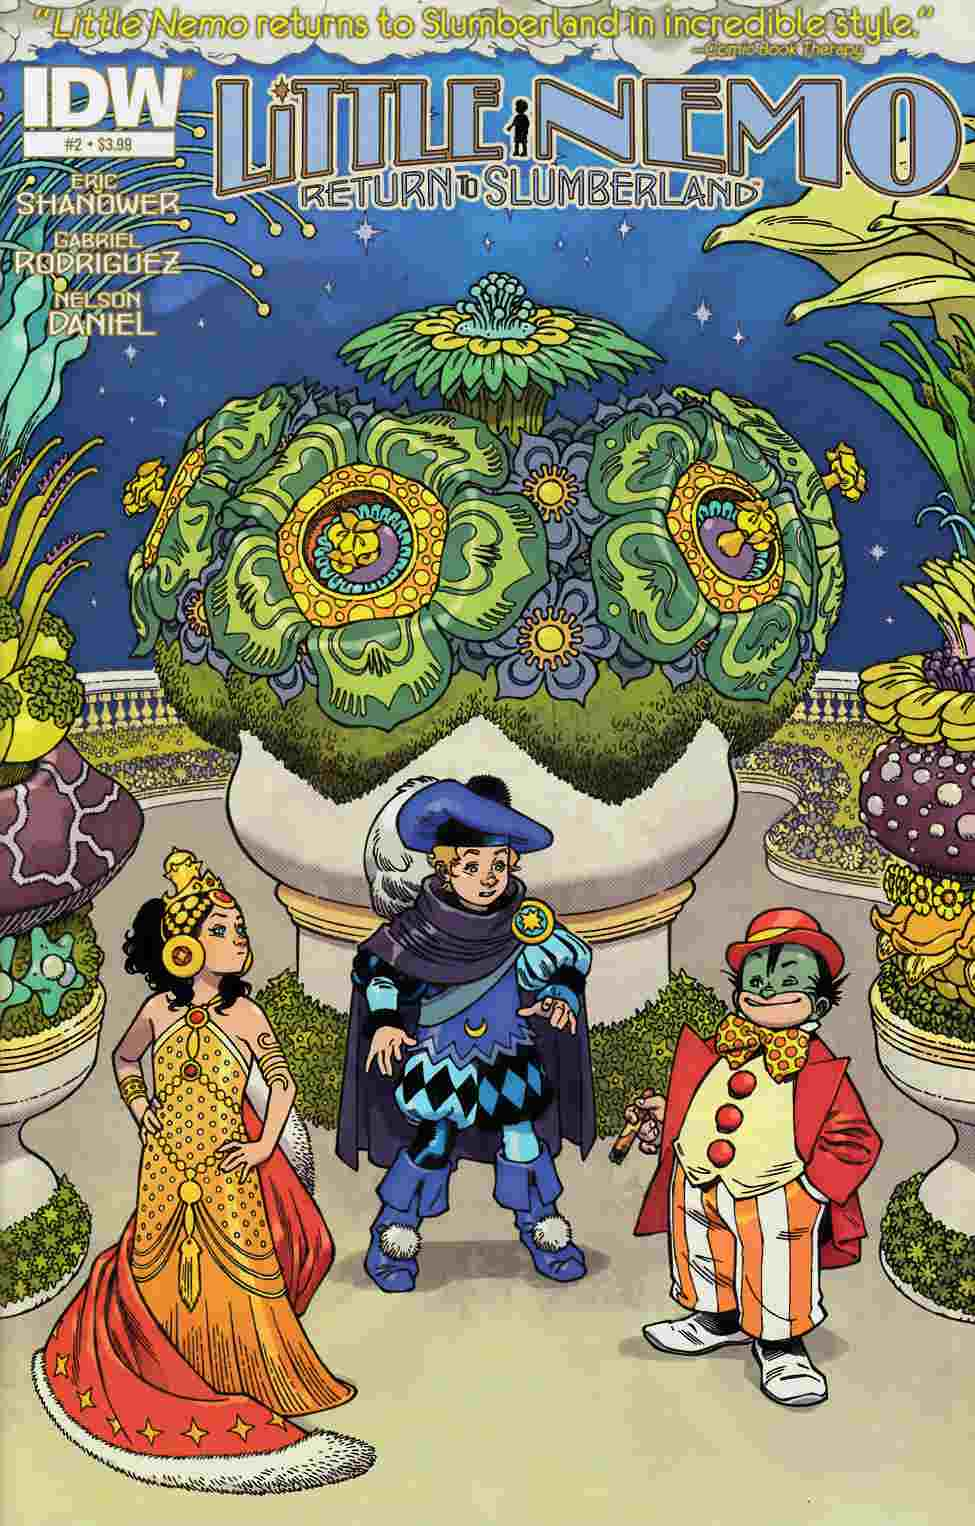 Little Nemo Return To Slumberland #2 [IDW Comic]